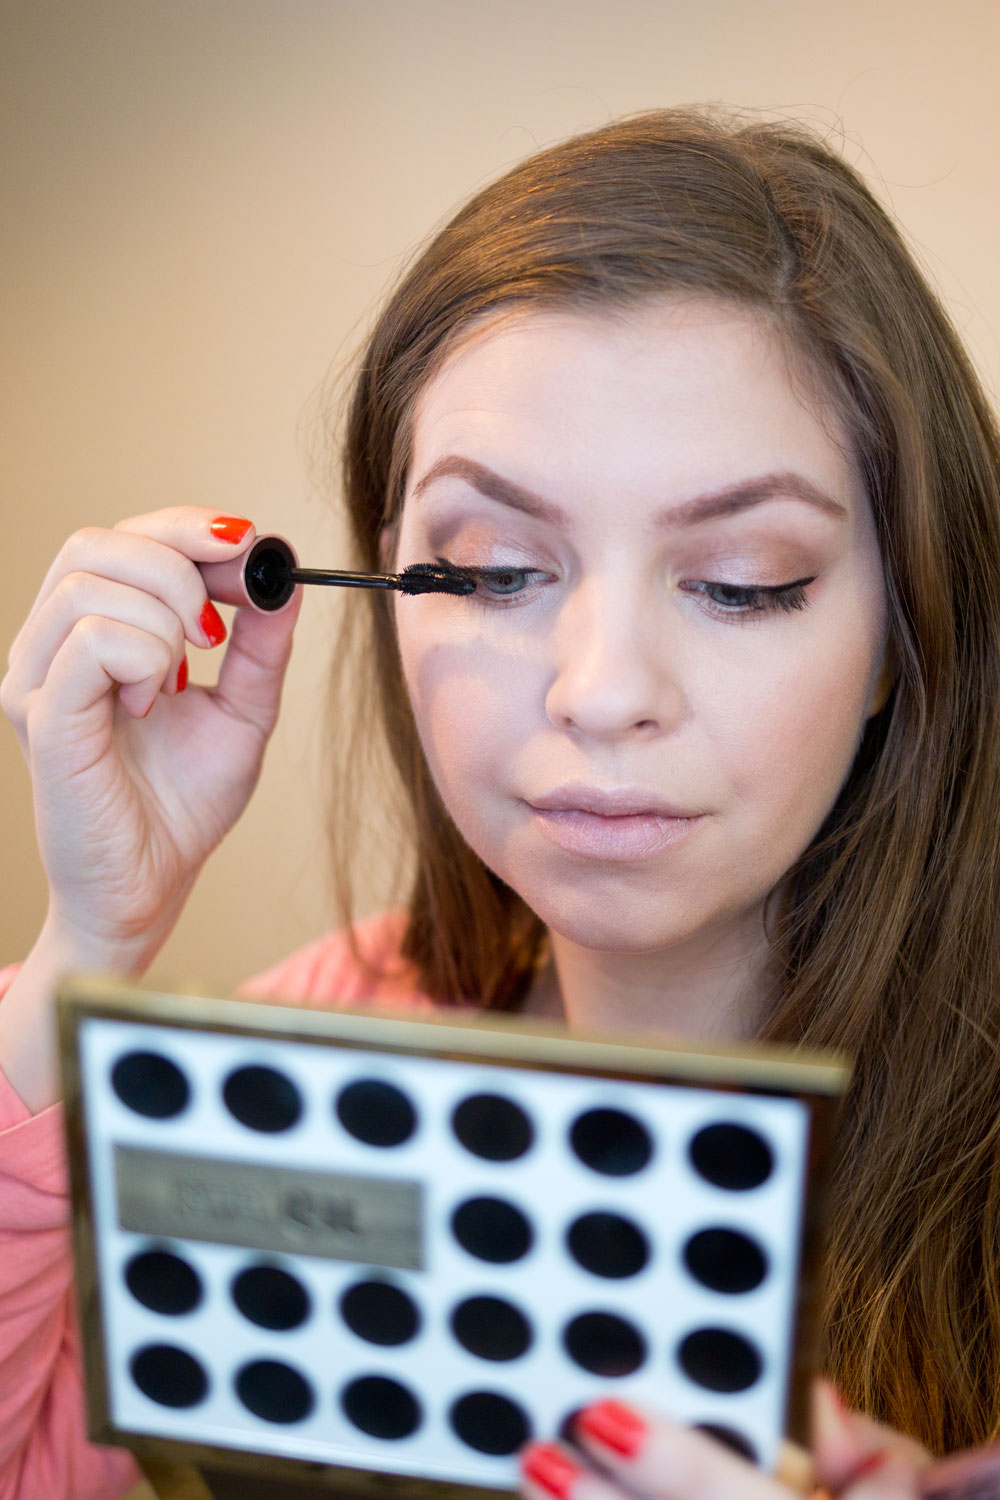 Neutral Eye Makeup for Glasses Wearers featuring Urban Decay Gwen Stefani Eyeshadow Palette // Hello Rigby Seattle Beauty & Style Blog